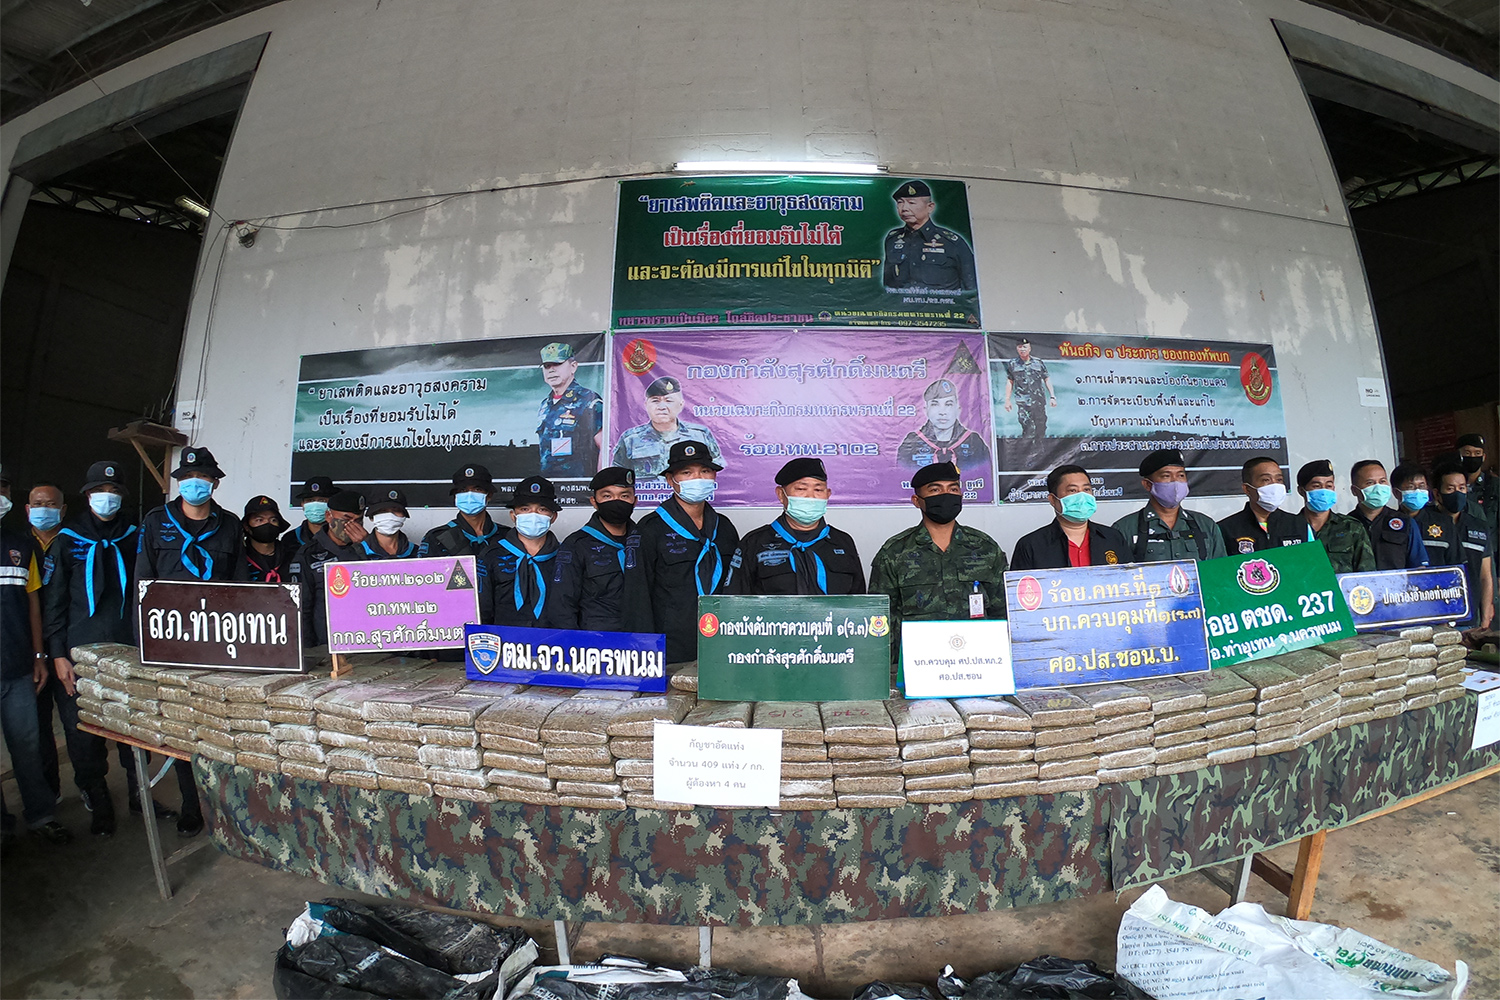 Security authorities display more than 400 kilogrammes of comprssed marijuana seized in Tha Uthen district of Nakhon Phanom on Saturday night. (Photo by Pattanapong Sripiachai)